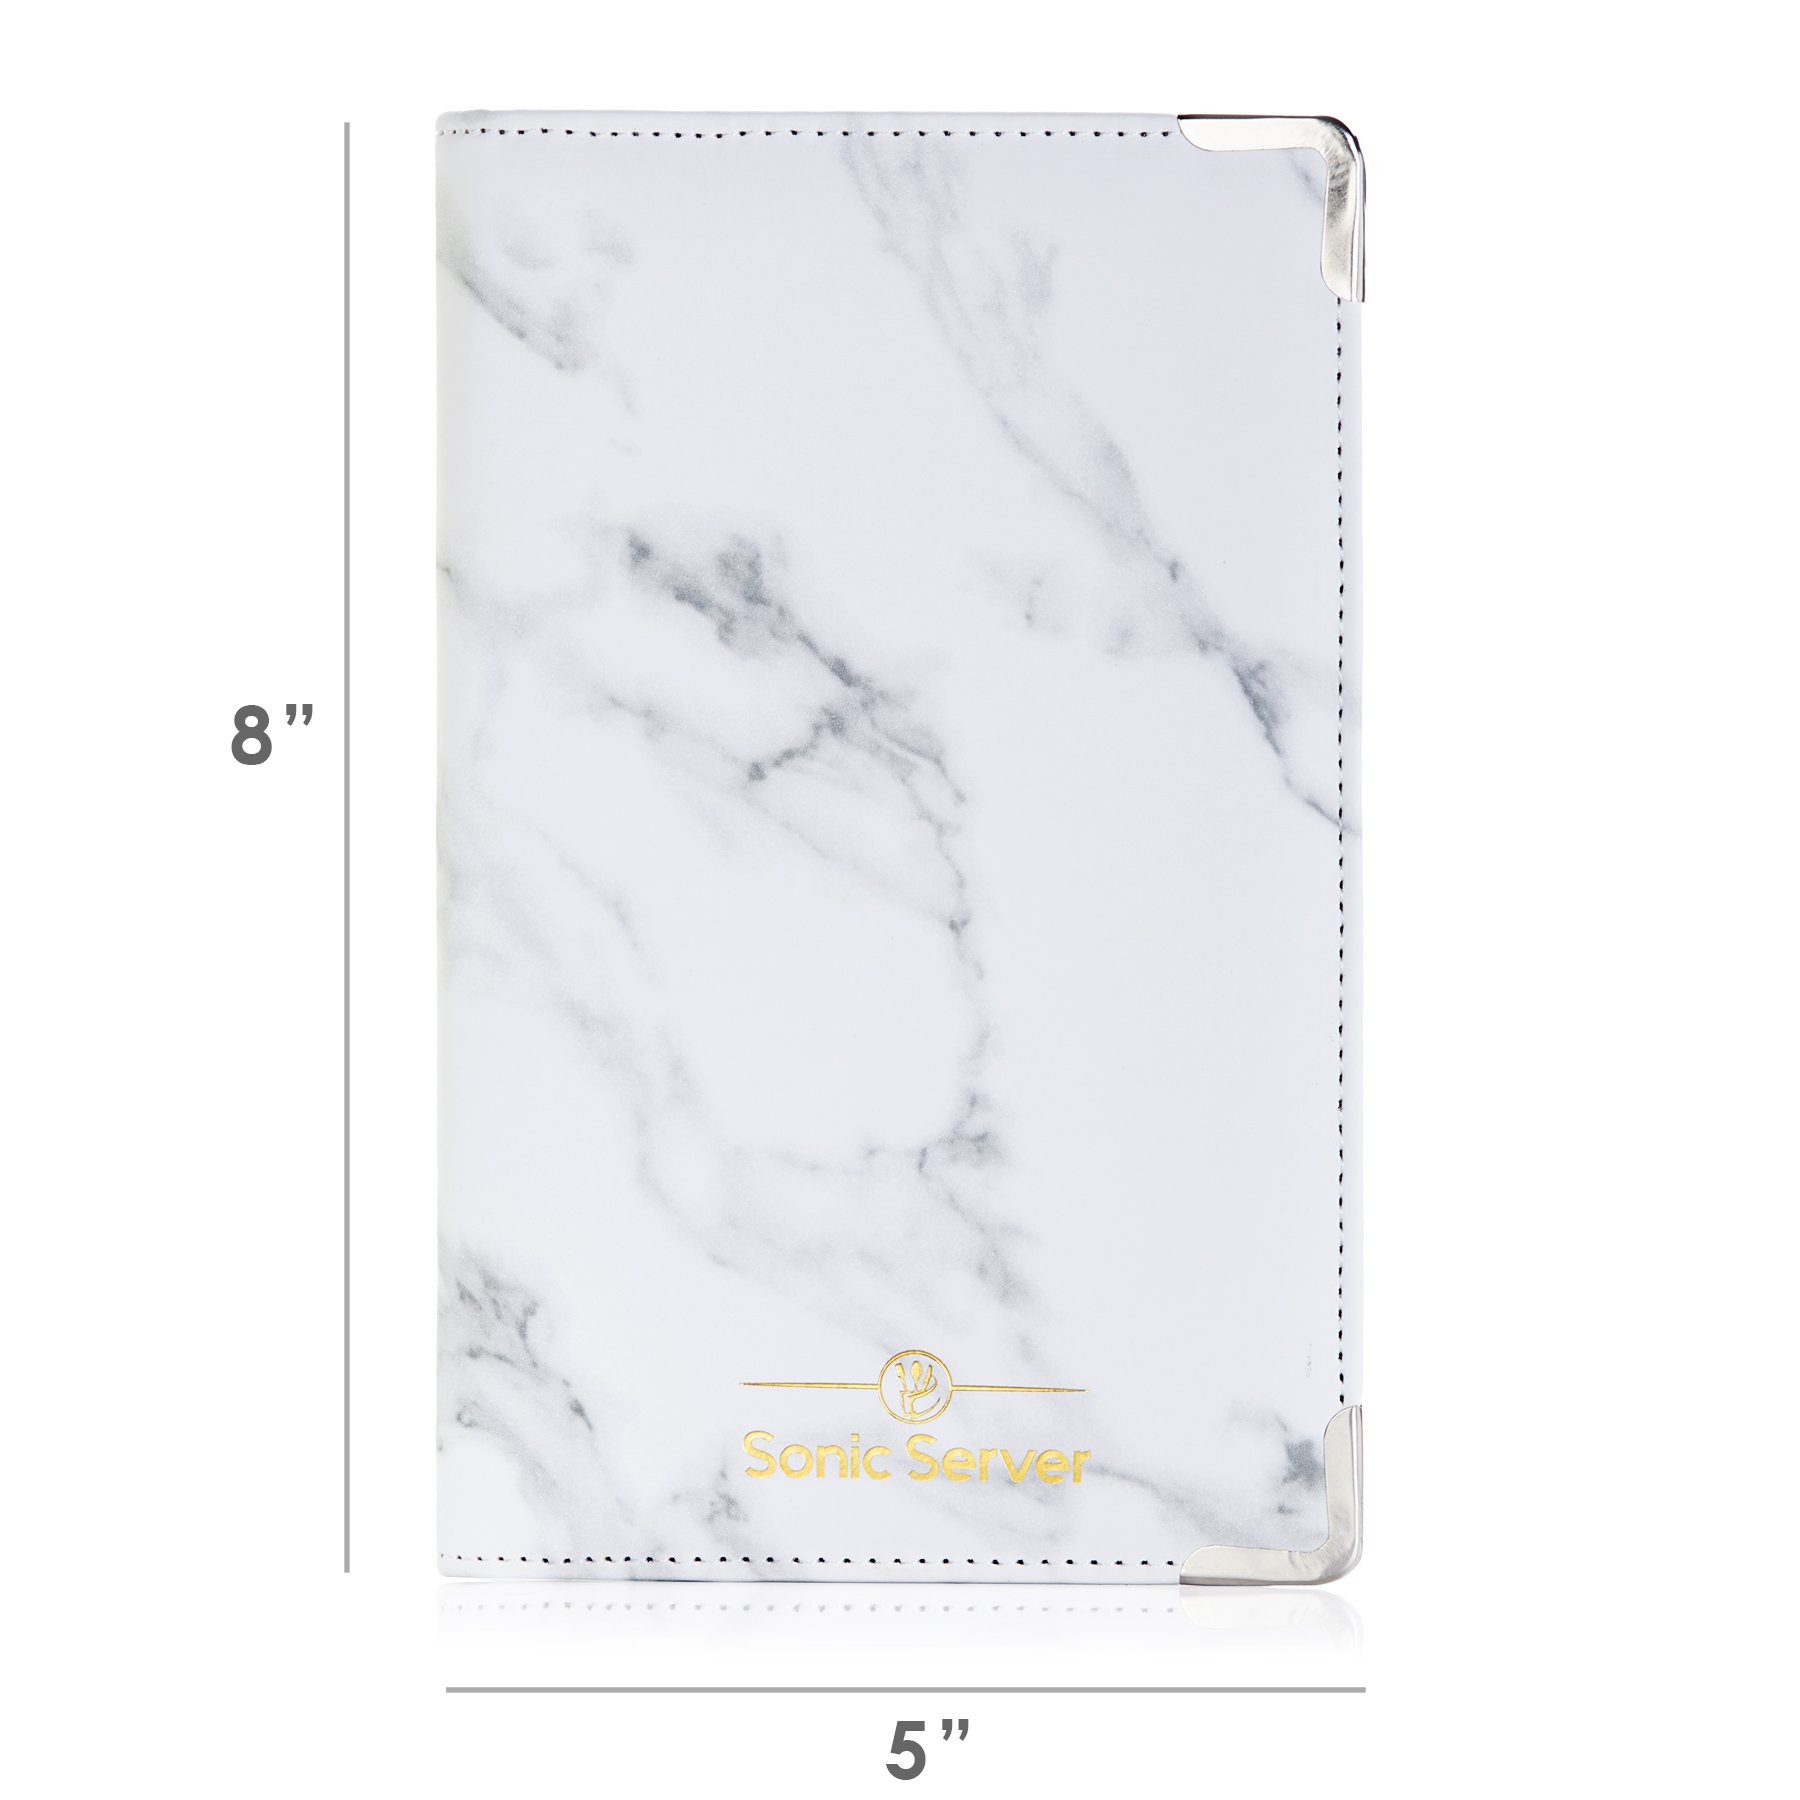 Sonic Server Marble Style Deluxe Server Book for Restaurant Waiter Waitress Waitstaff   Classy White Marble   9 Pockets includes Zipper Pouch with Pen Holder   Holds Guest Checks, Money, Order Pad by Sonic Server (Image #2)